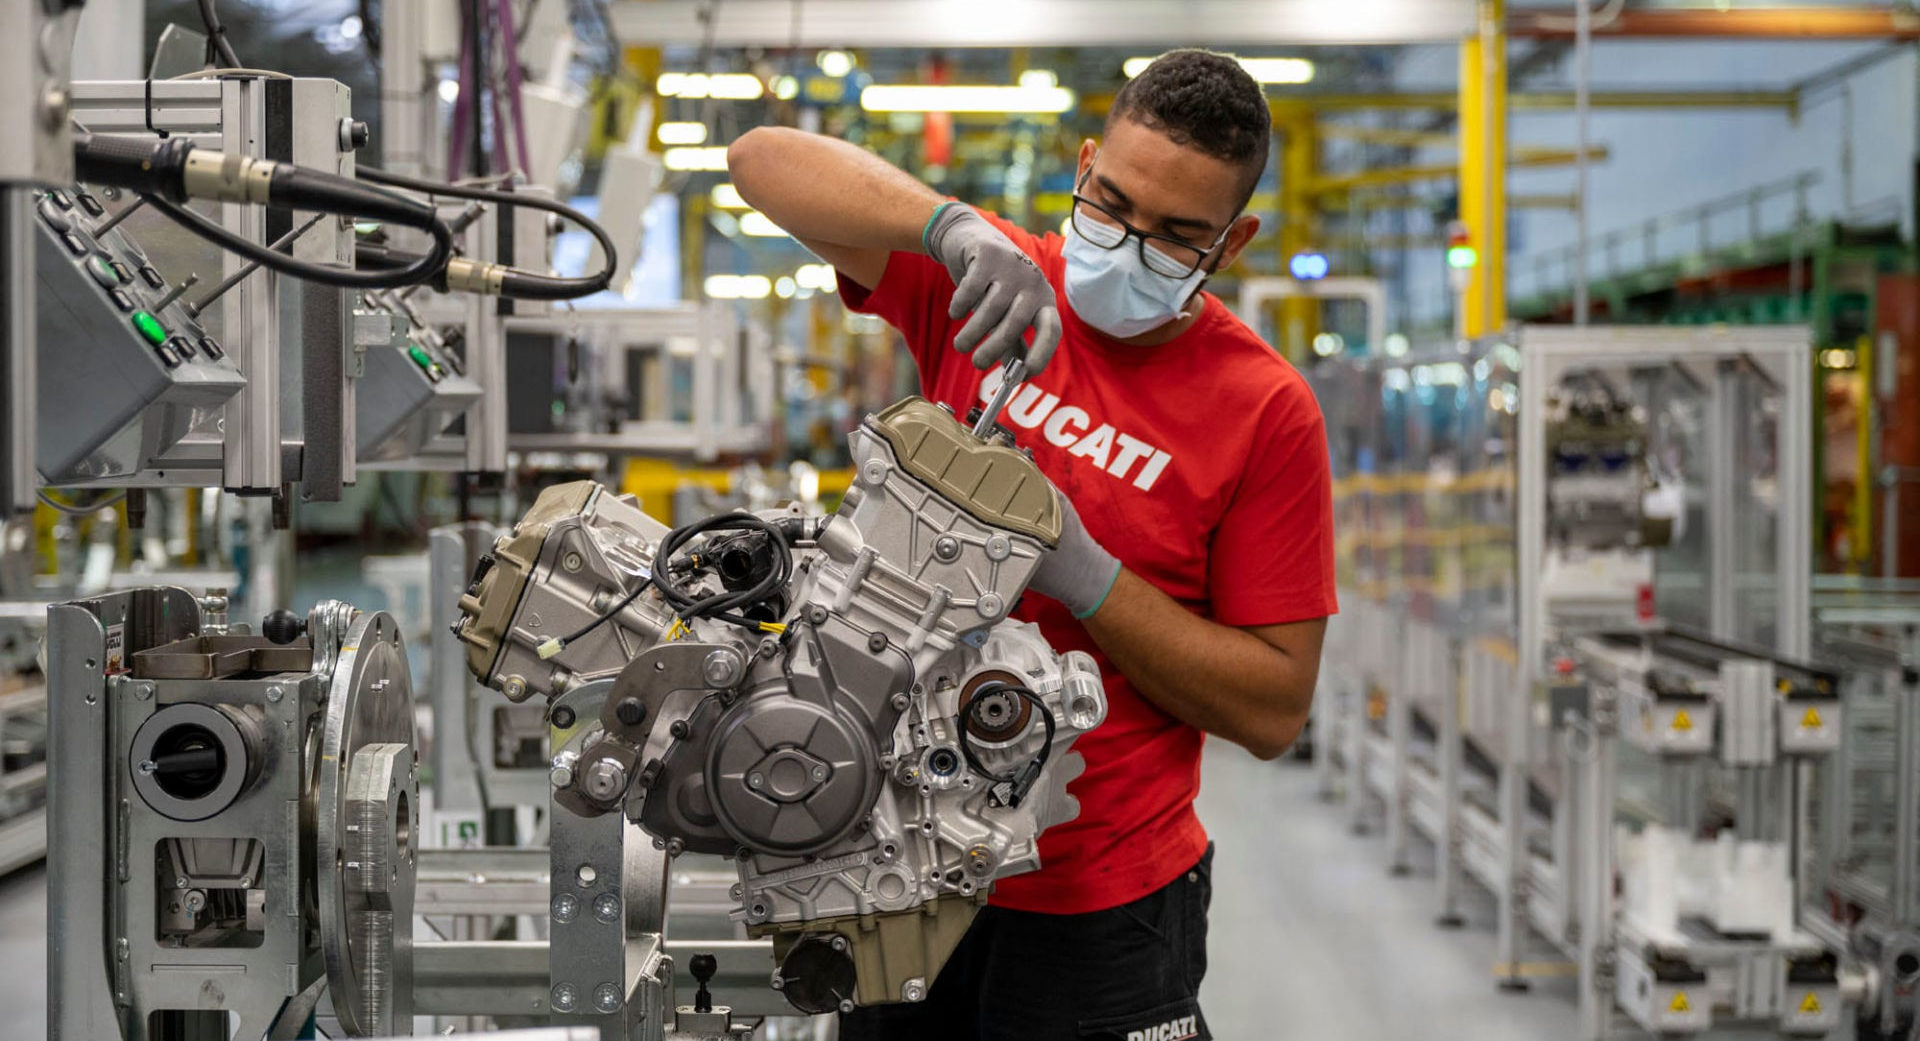 A worker assembling an engine on the production line at the Ducati factory in Italy. Photo courtesy Ducati.